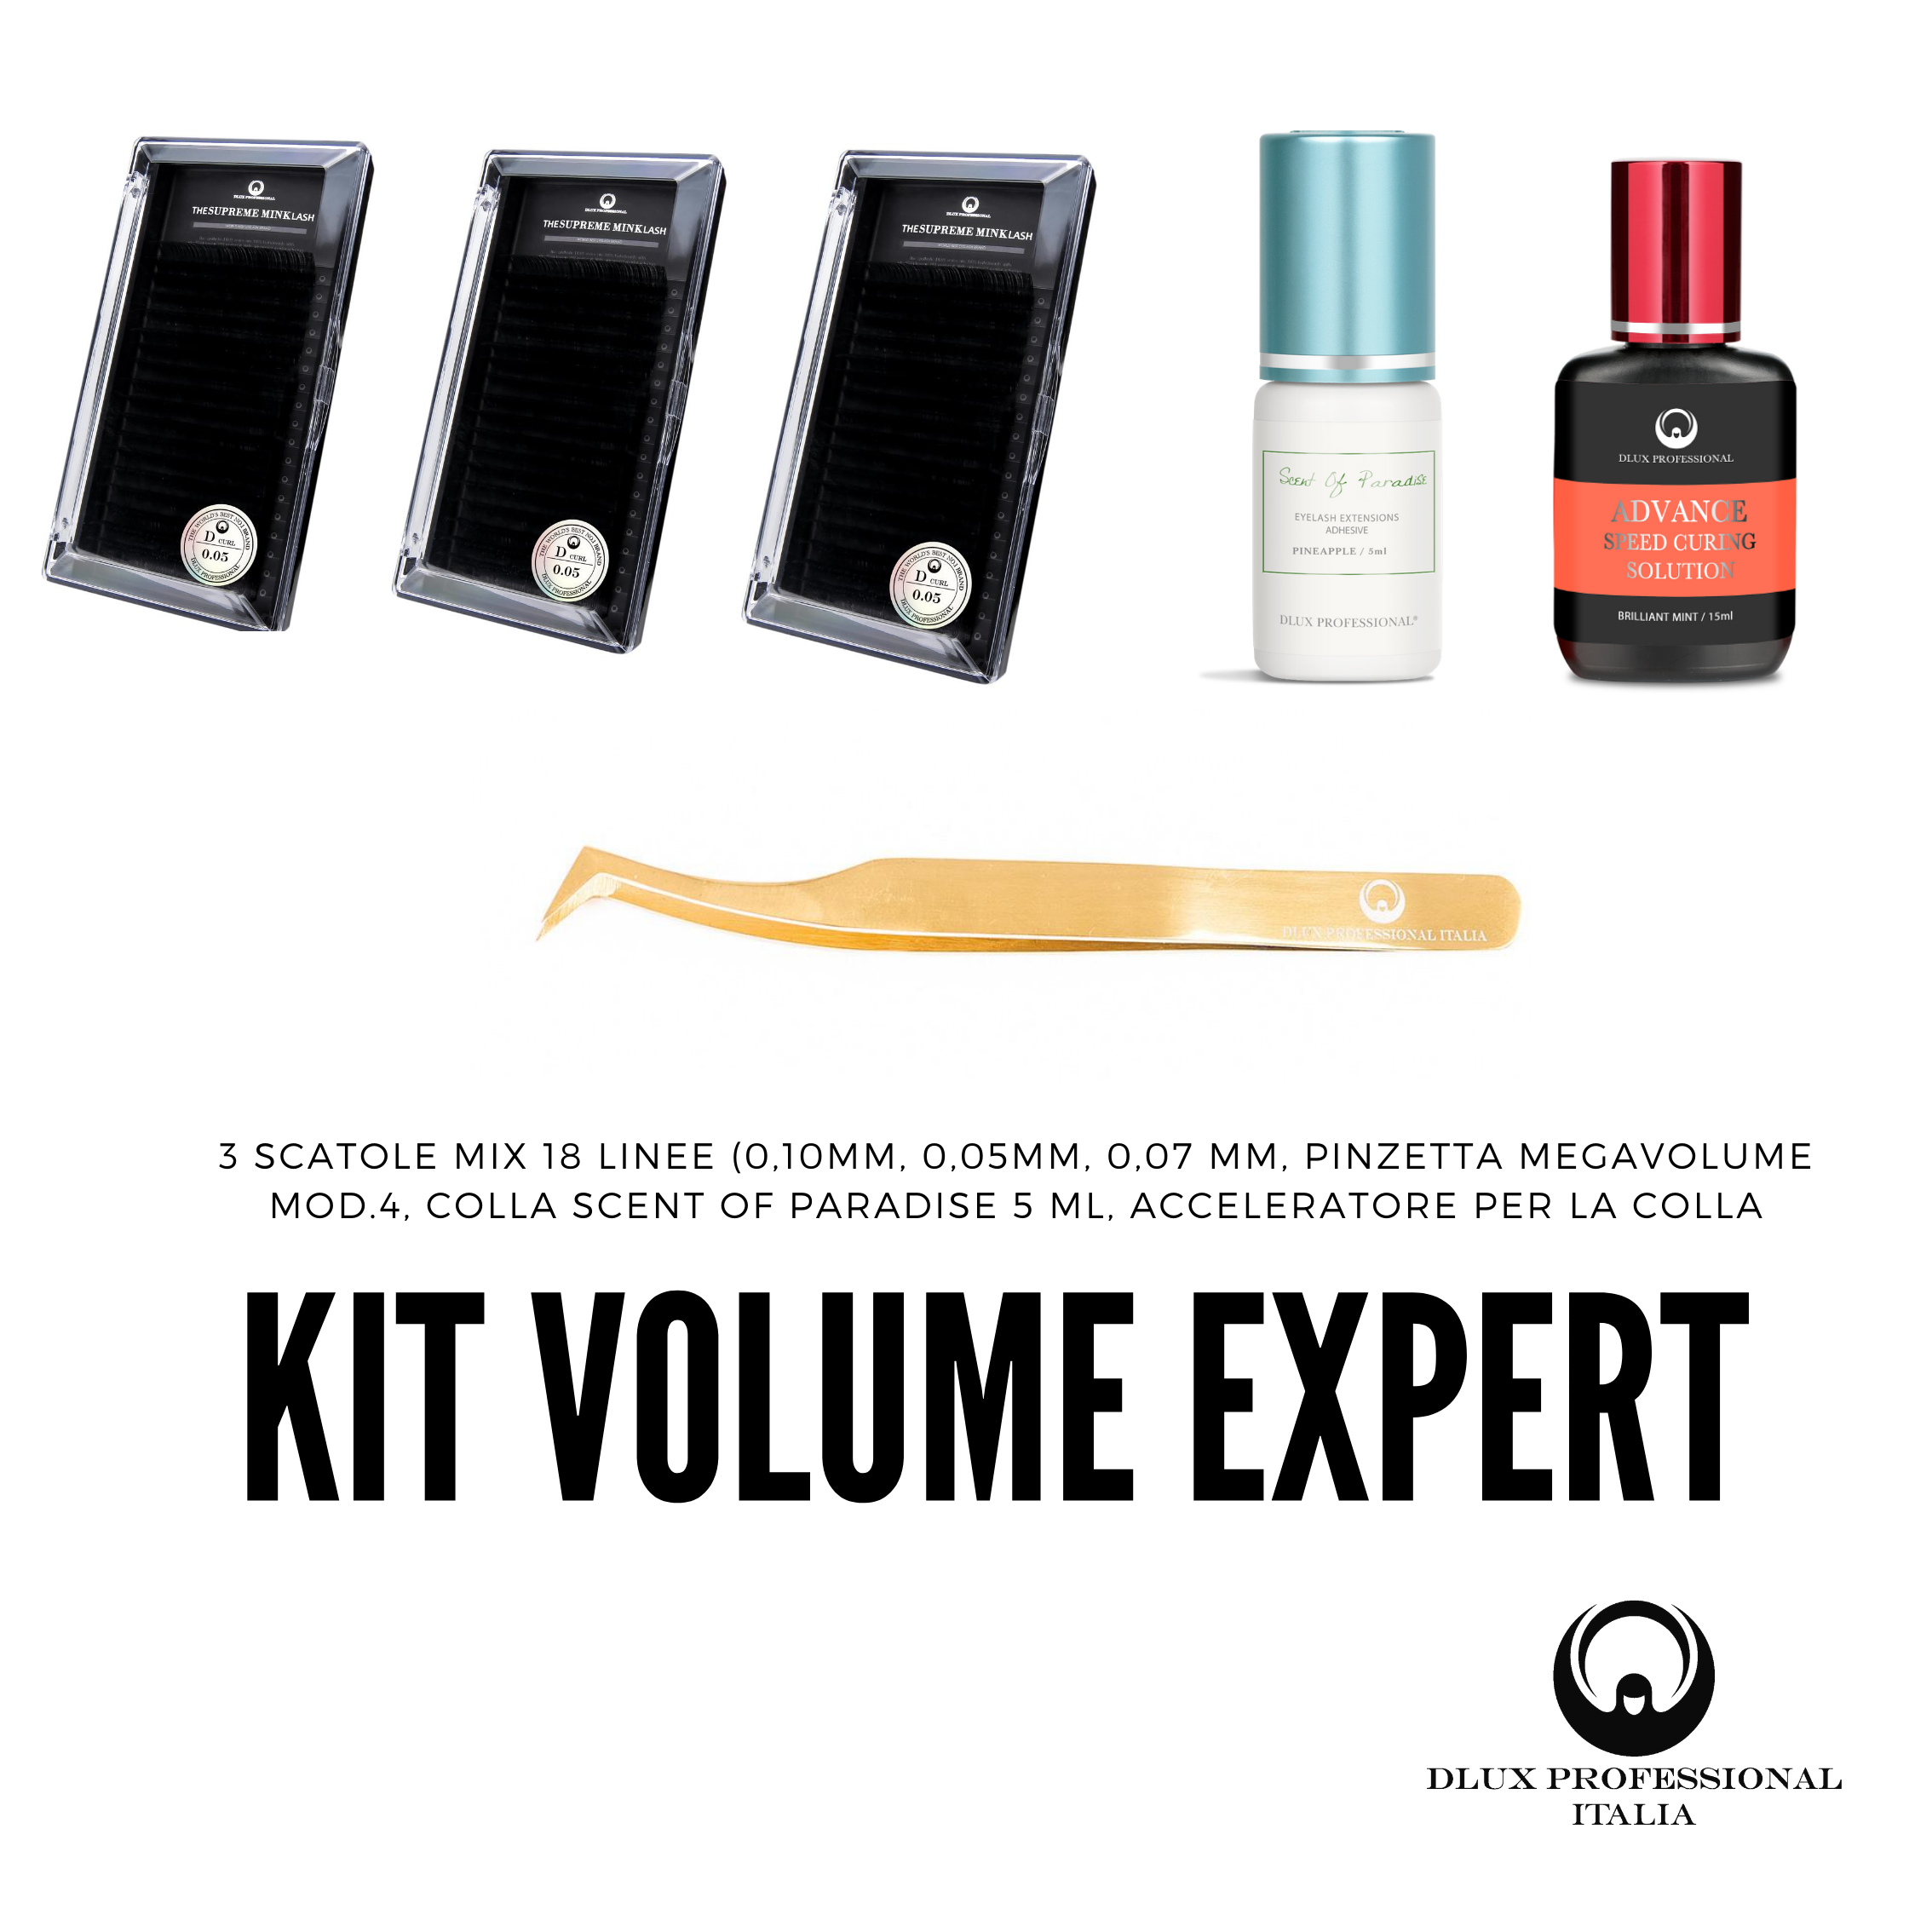 Kit Extension ciglia Volume Expert DLux Professional